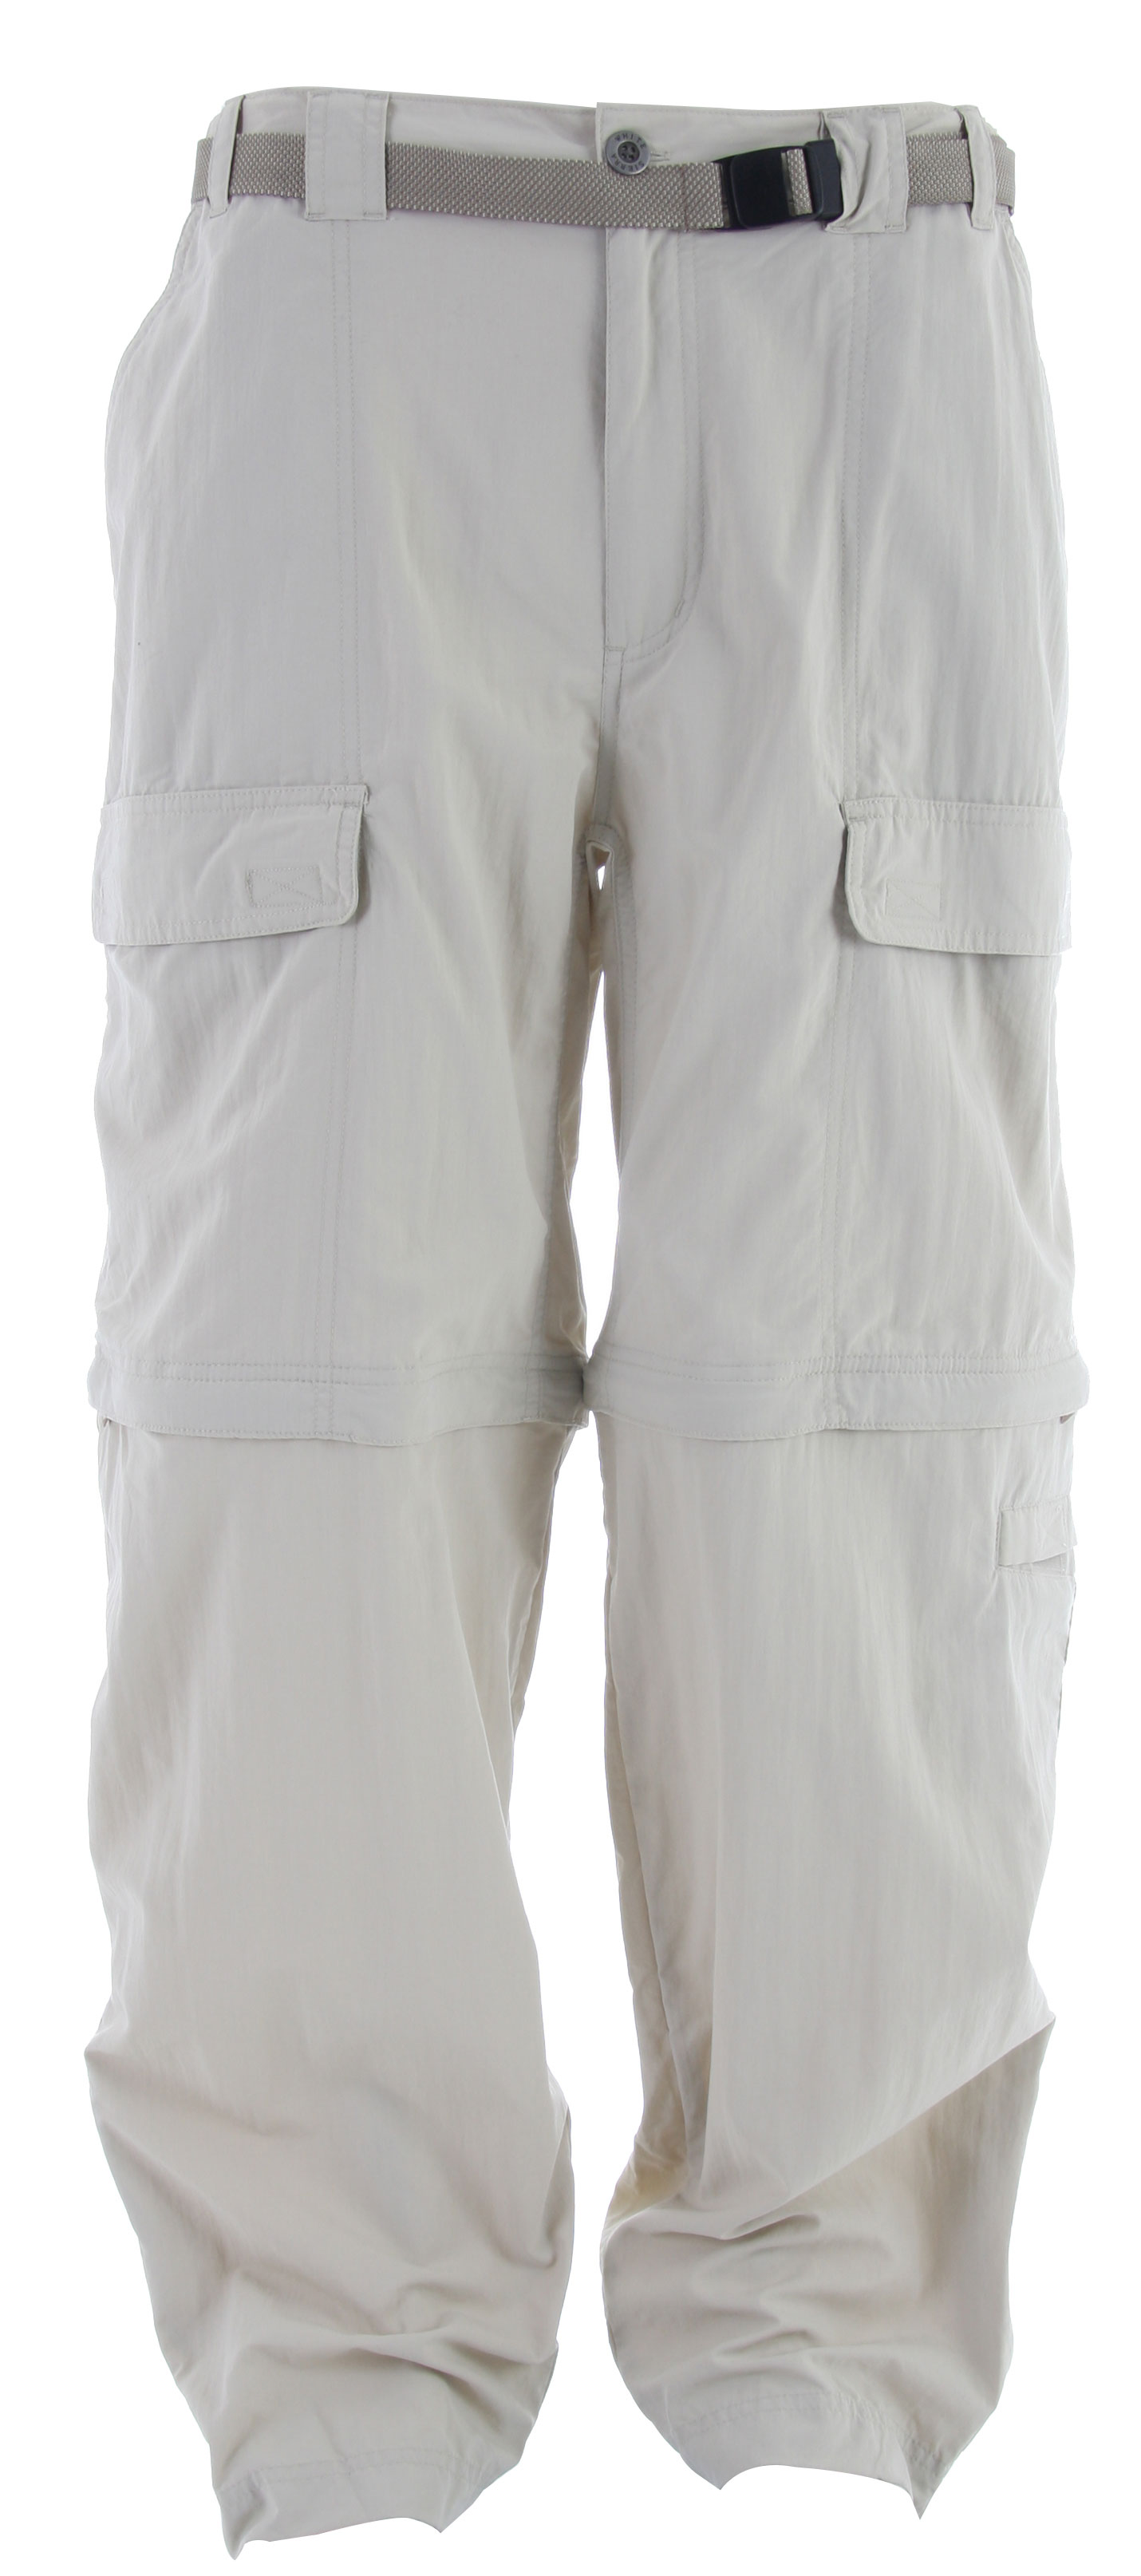 "Zip-off pant legs make for an easy change from pants to shorts, or vice-versa. Vertical side zippers on cuffs allow the leg sections to slip off easily over footwear. Lightweight nylon offers UPF 30 sun protection.Key Features of the White Sierra Trial Pants: 100% nylon Sierra Cloth woven UPF 30 Convertible pant Comfort fit side elastic Front cargo pockets Back cell phone pocket Gusseted crotch Attached jacquard belt Velcro tap adjustable leg opening Short inseam: 10"" Pant inseam: 30"", 32"" and 34"" - $32.95"